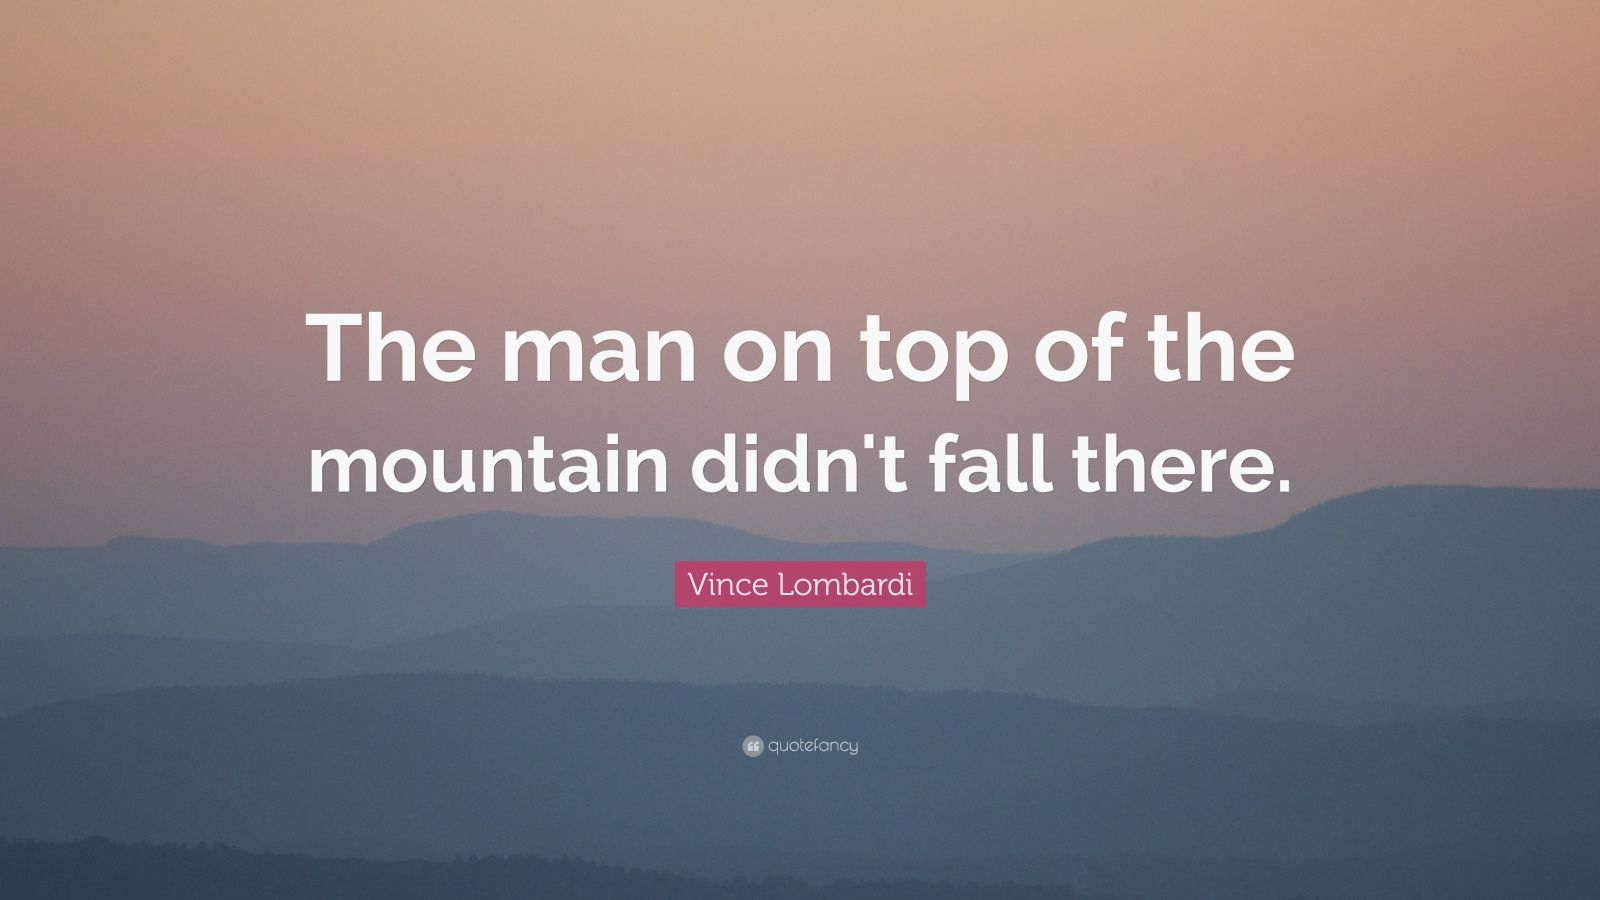 Wallpaper Images Of Fall Vince Lombardi Quote The Man On Top Of The Mountain Didn